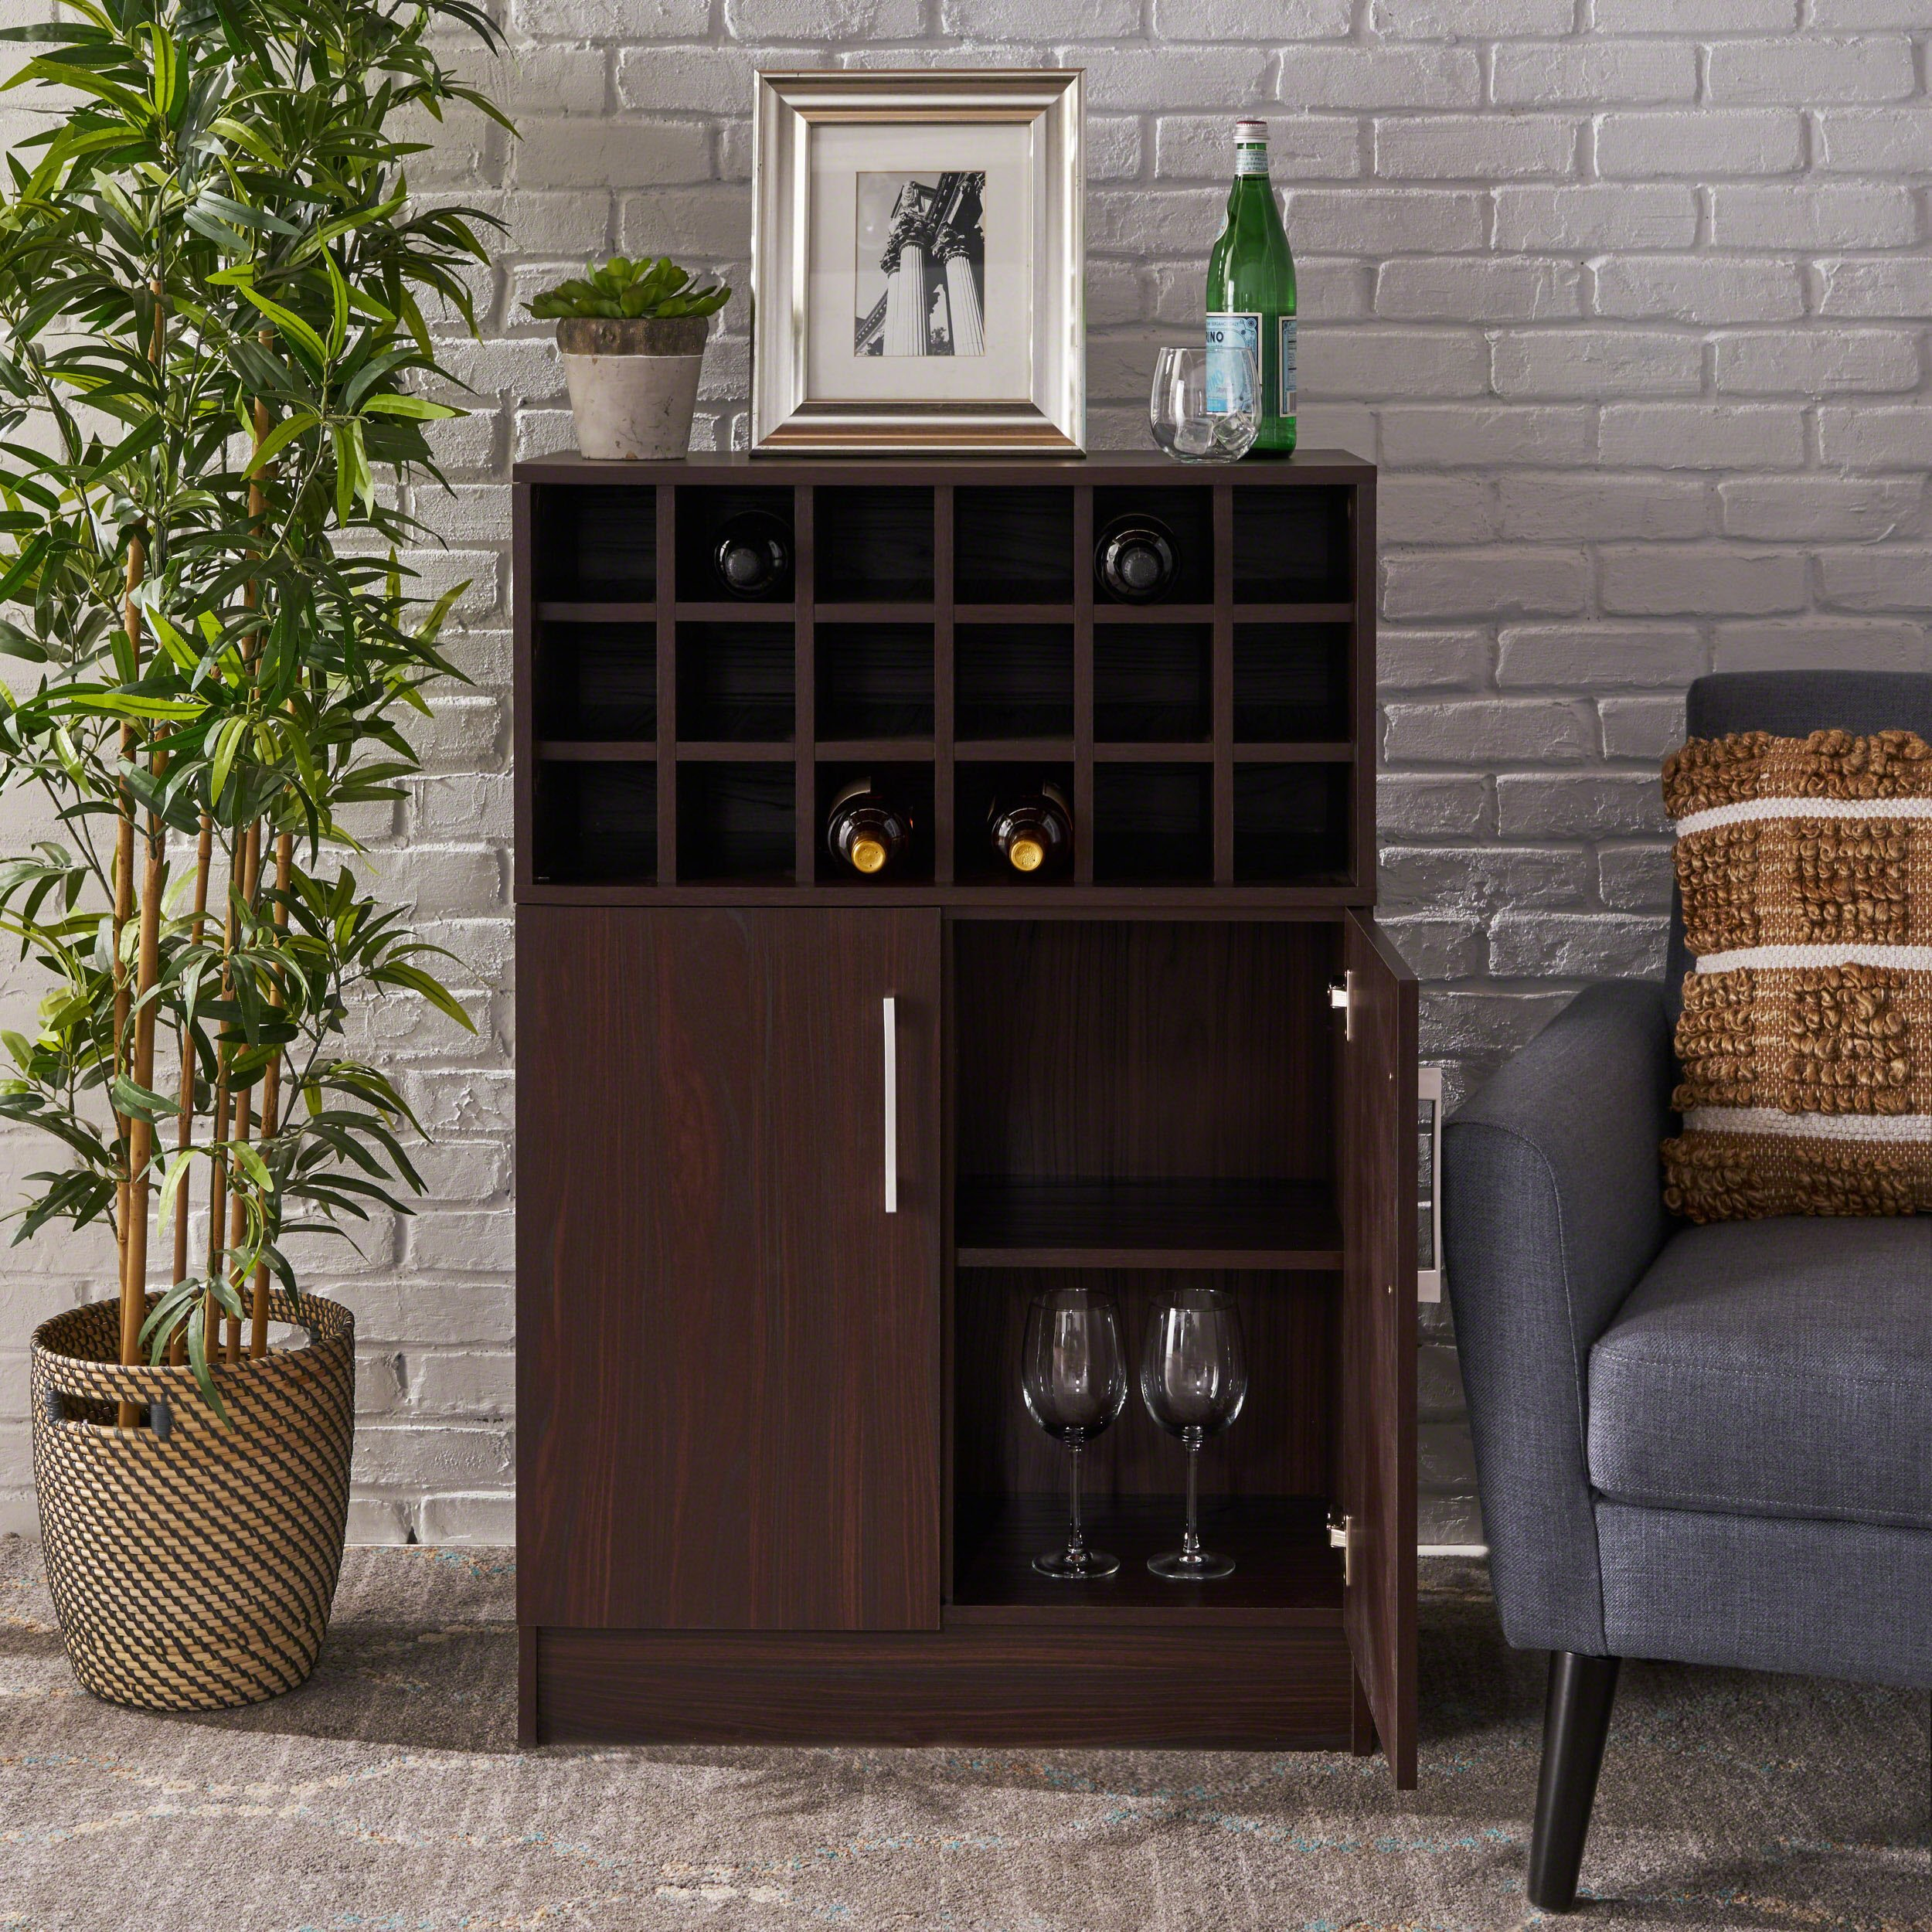 Rouche Mid Century Wine Cabinet | Perfect for Home Bar or Kitchen | Finished Faux Wood in Wenge by Christopher Knight Home